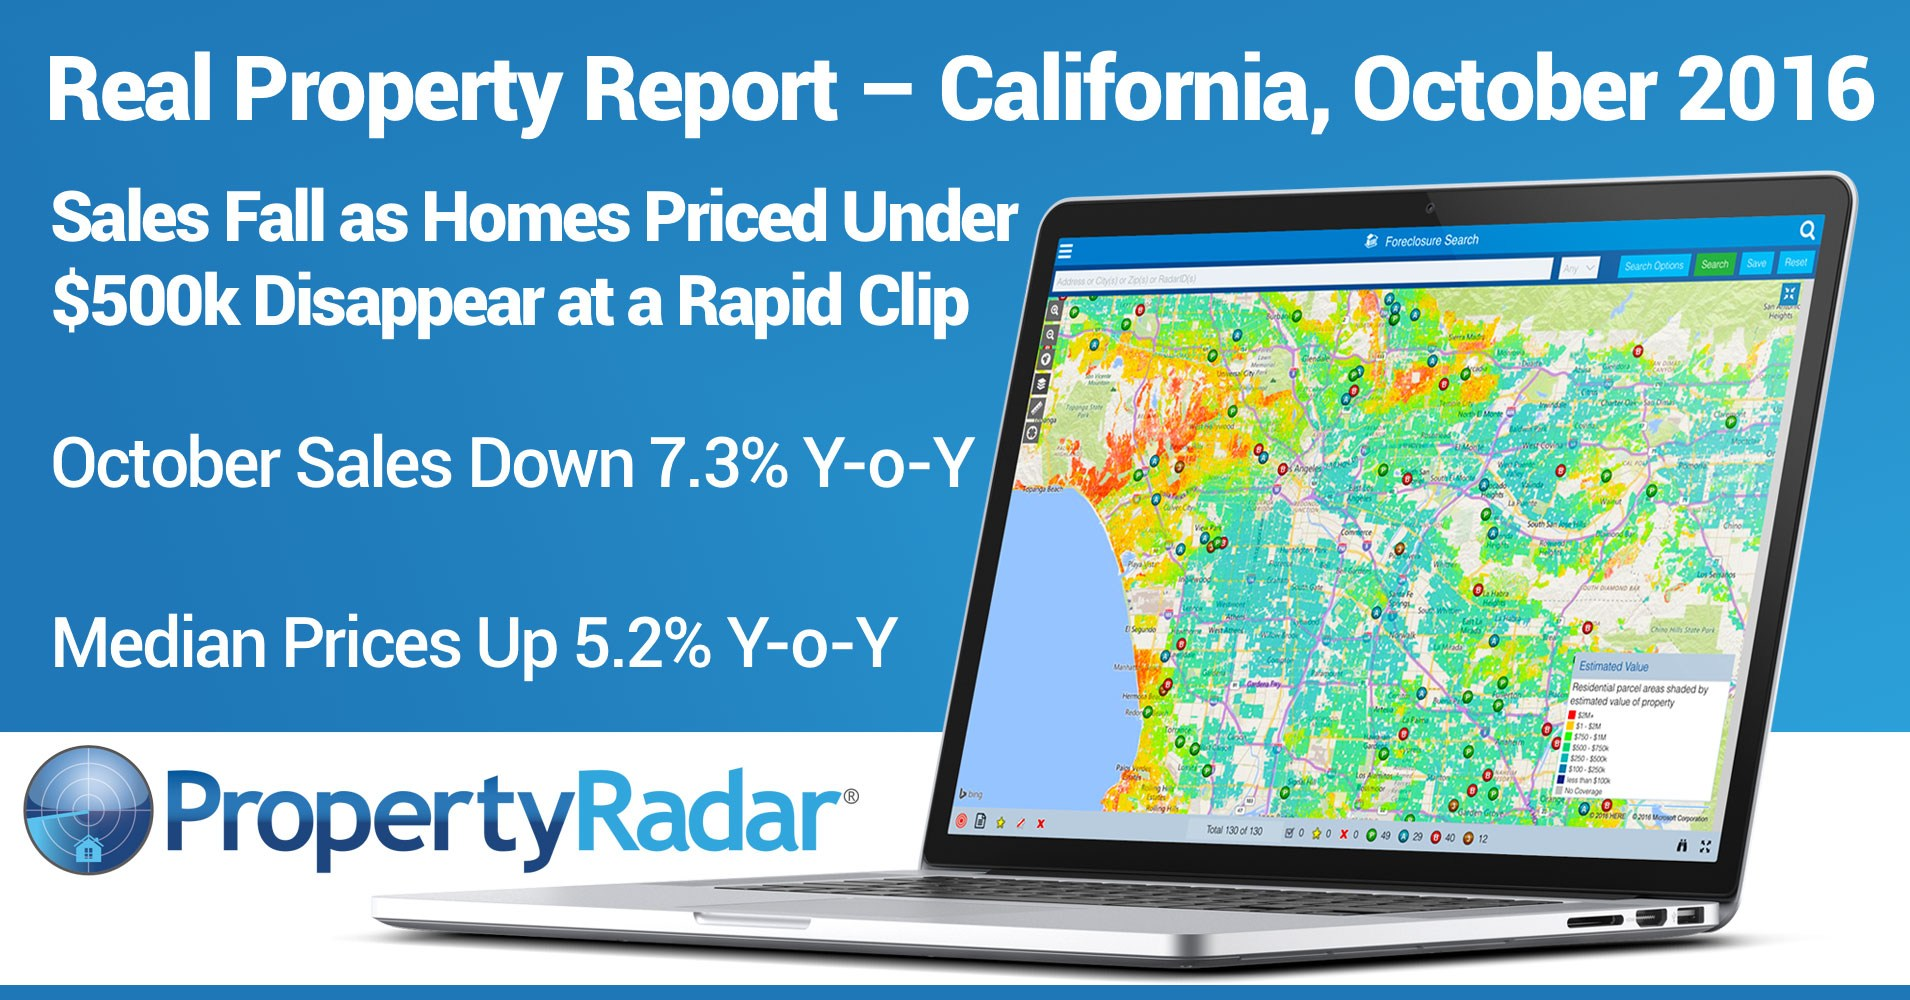 Sales Fall as Homes Priced Under $500,000 Disappear at a Rapid Clip; October Sales Down 7.3% Year-over-Year; Median Prices Up 5.2 Percent Year-over-Year